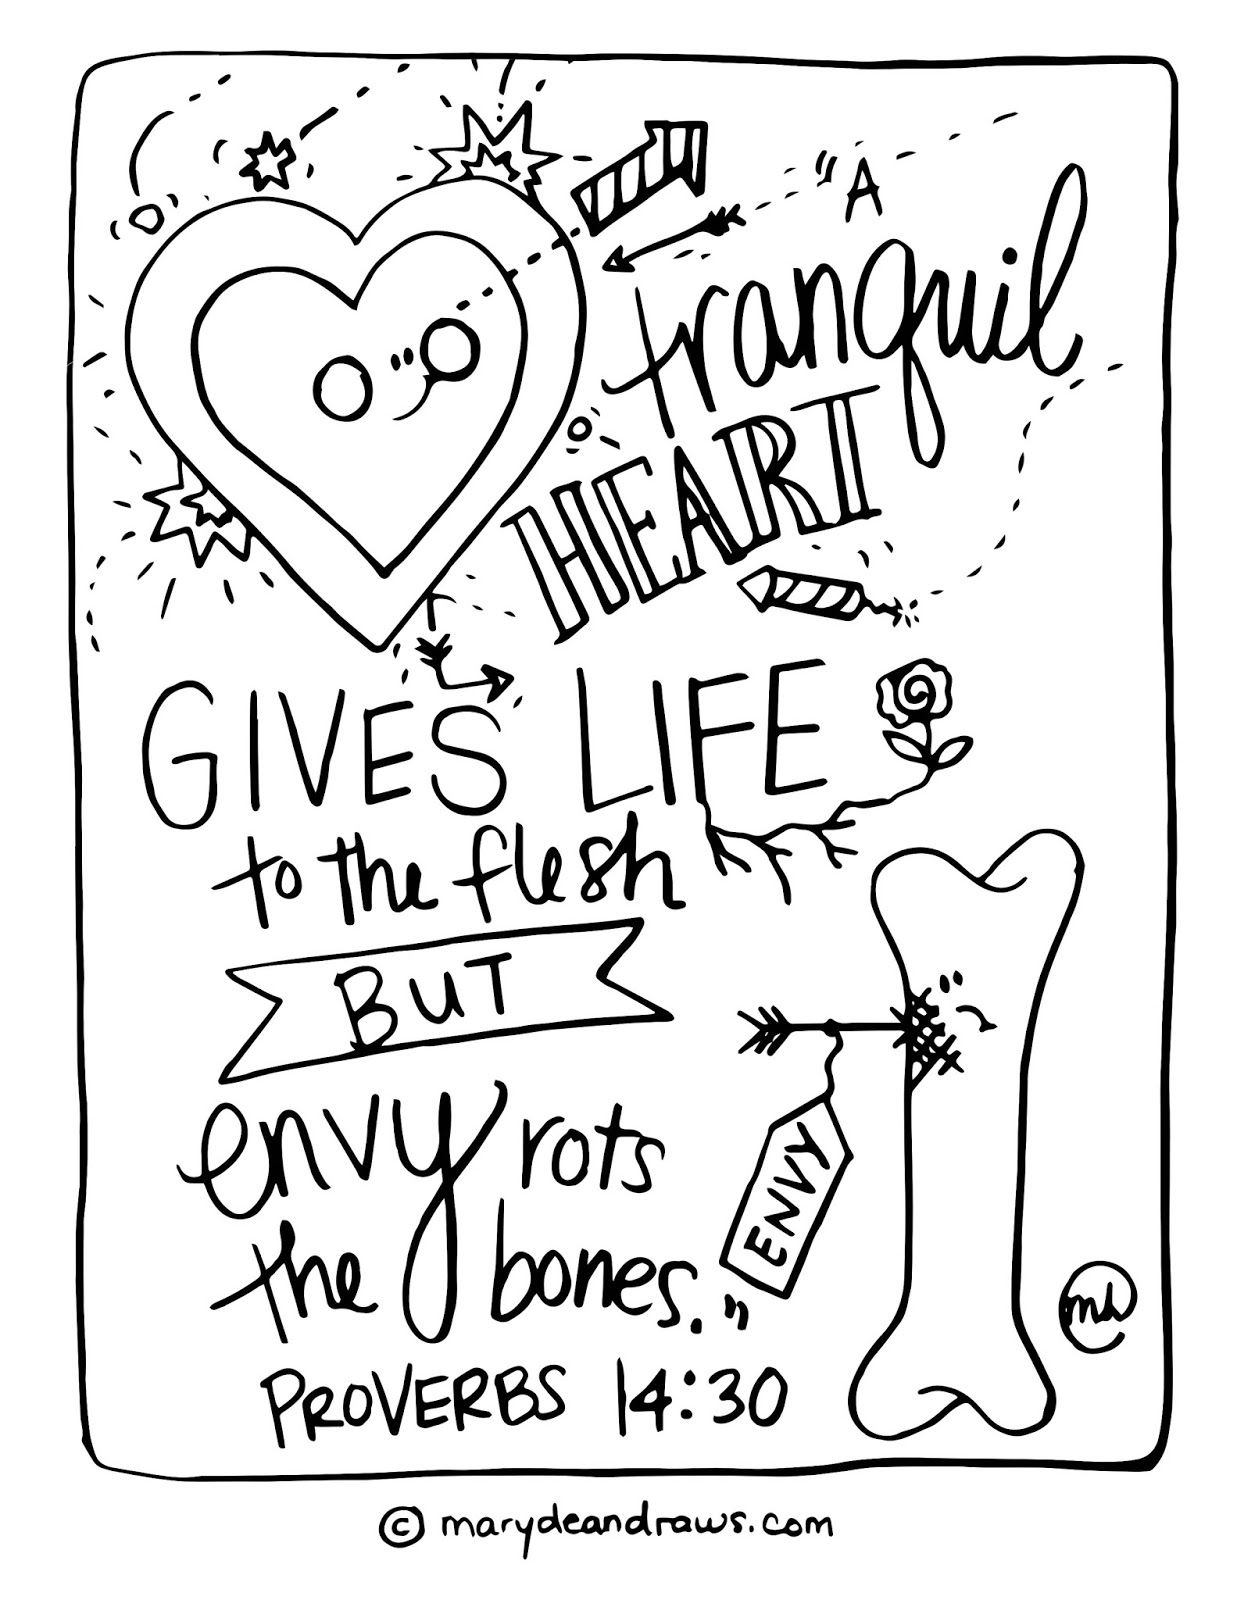 a tranquil heart gives life to the flesh by envy rots the bones proverbs bible verse coloring page